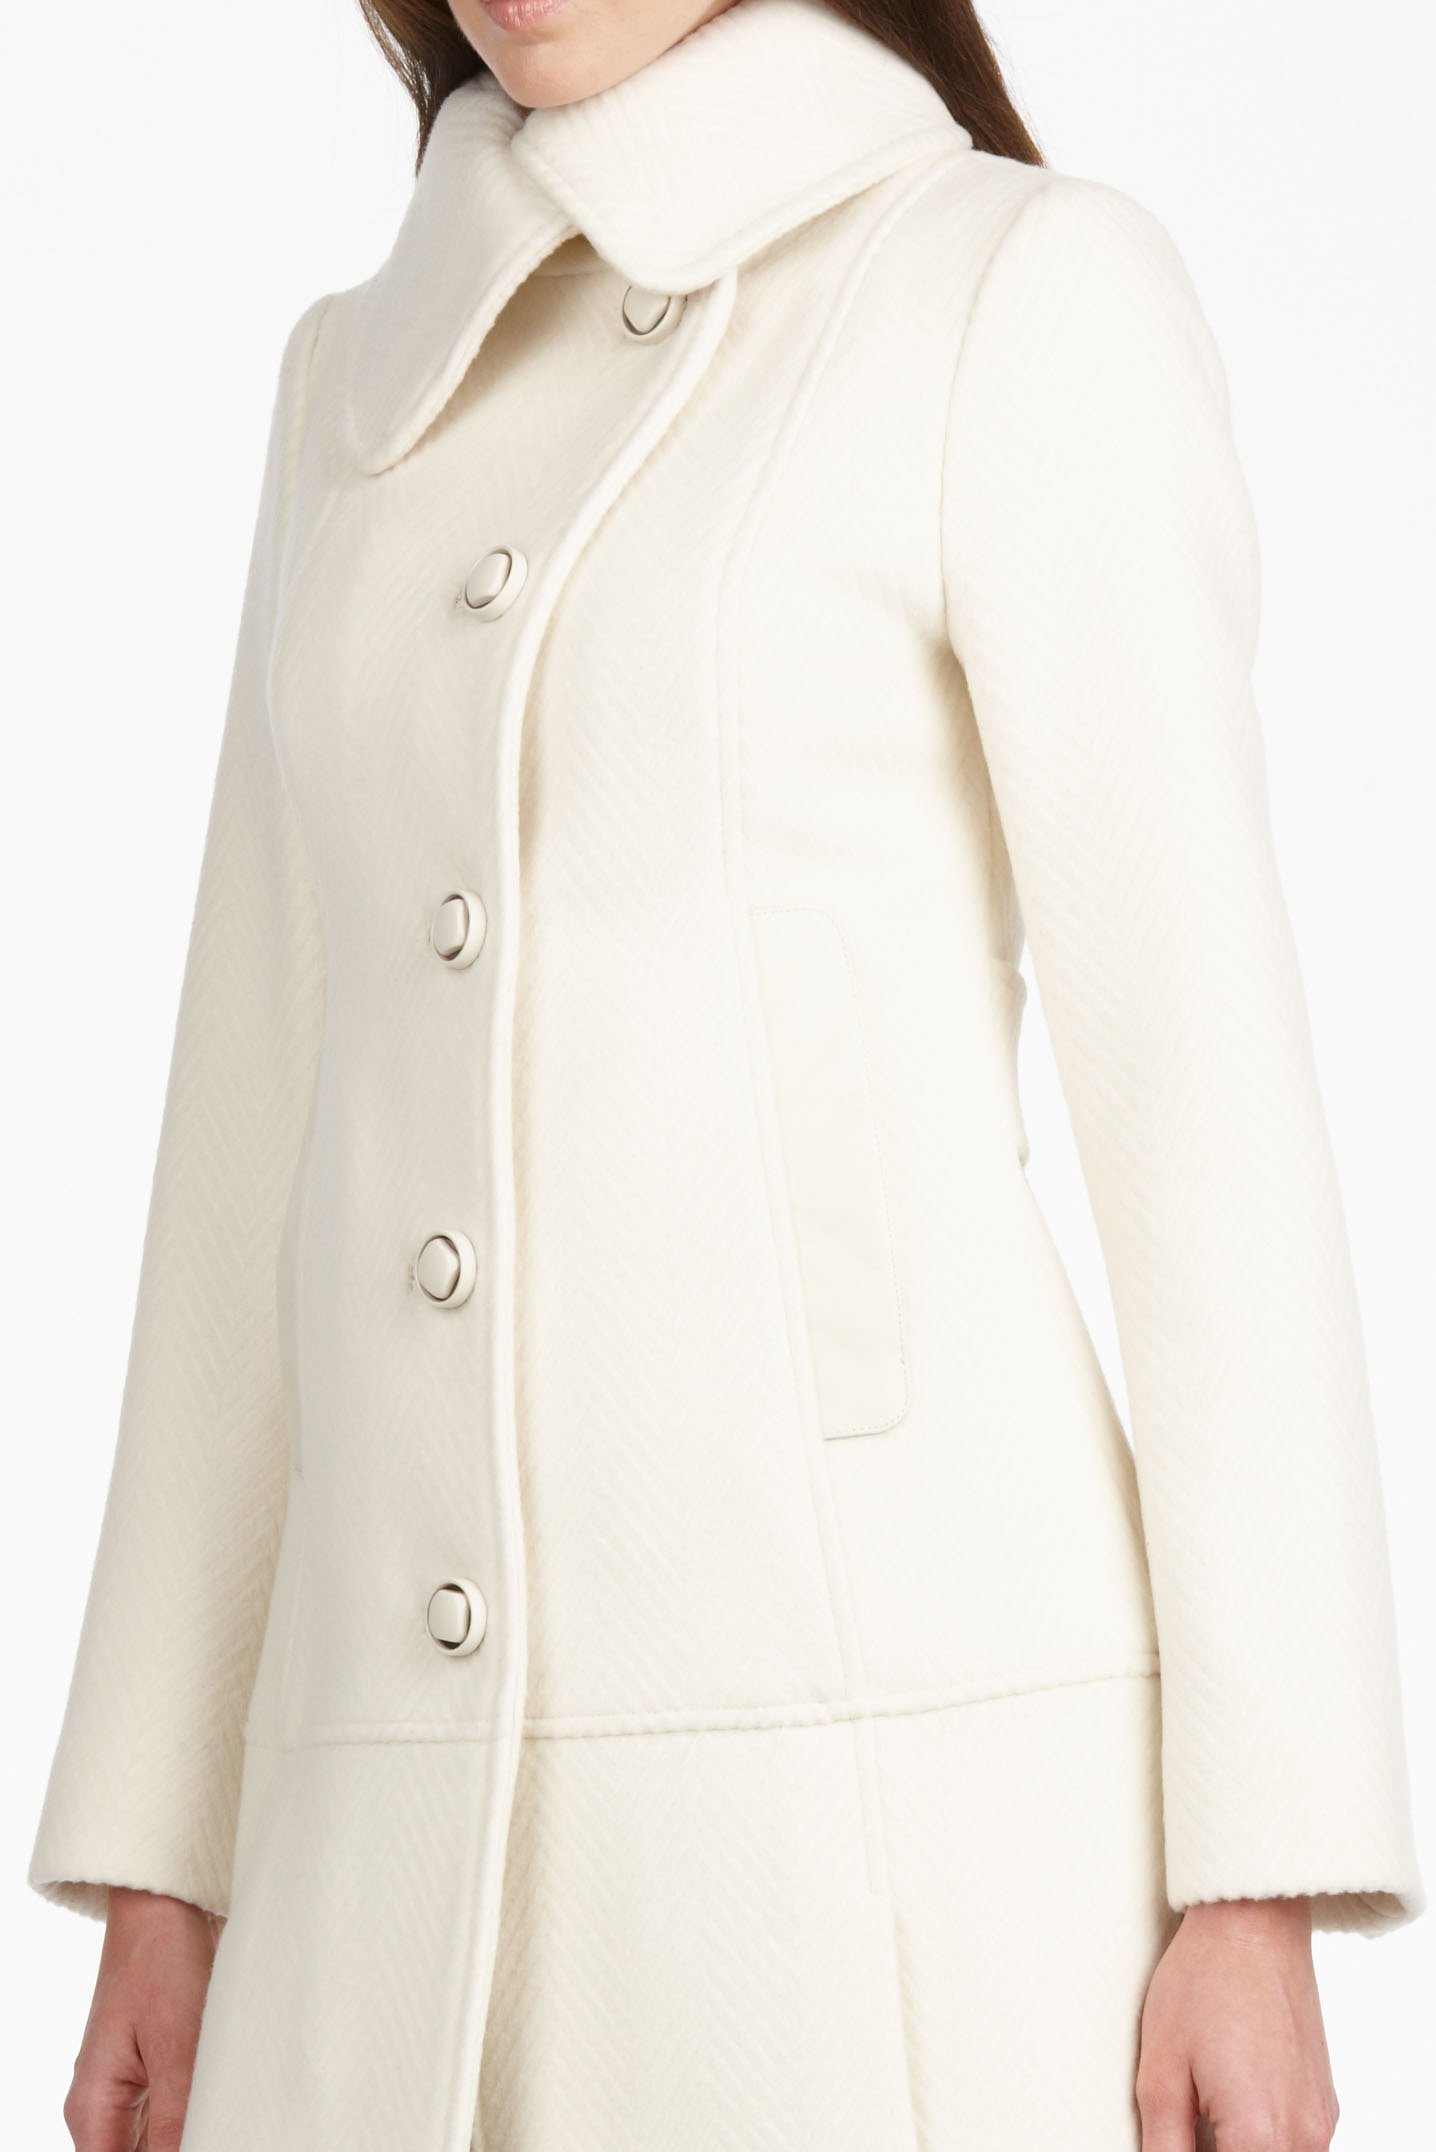 Find great deals on eBay for winter white cashmere coat. Shop with confidence.